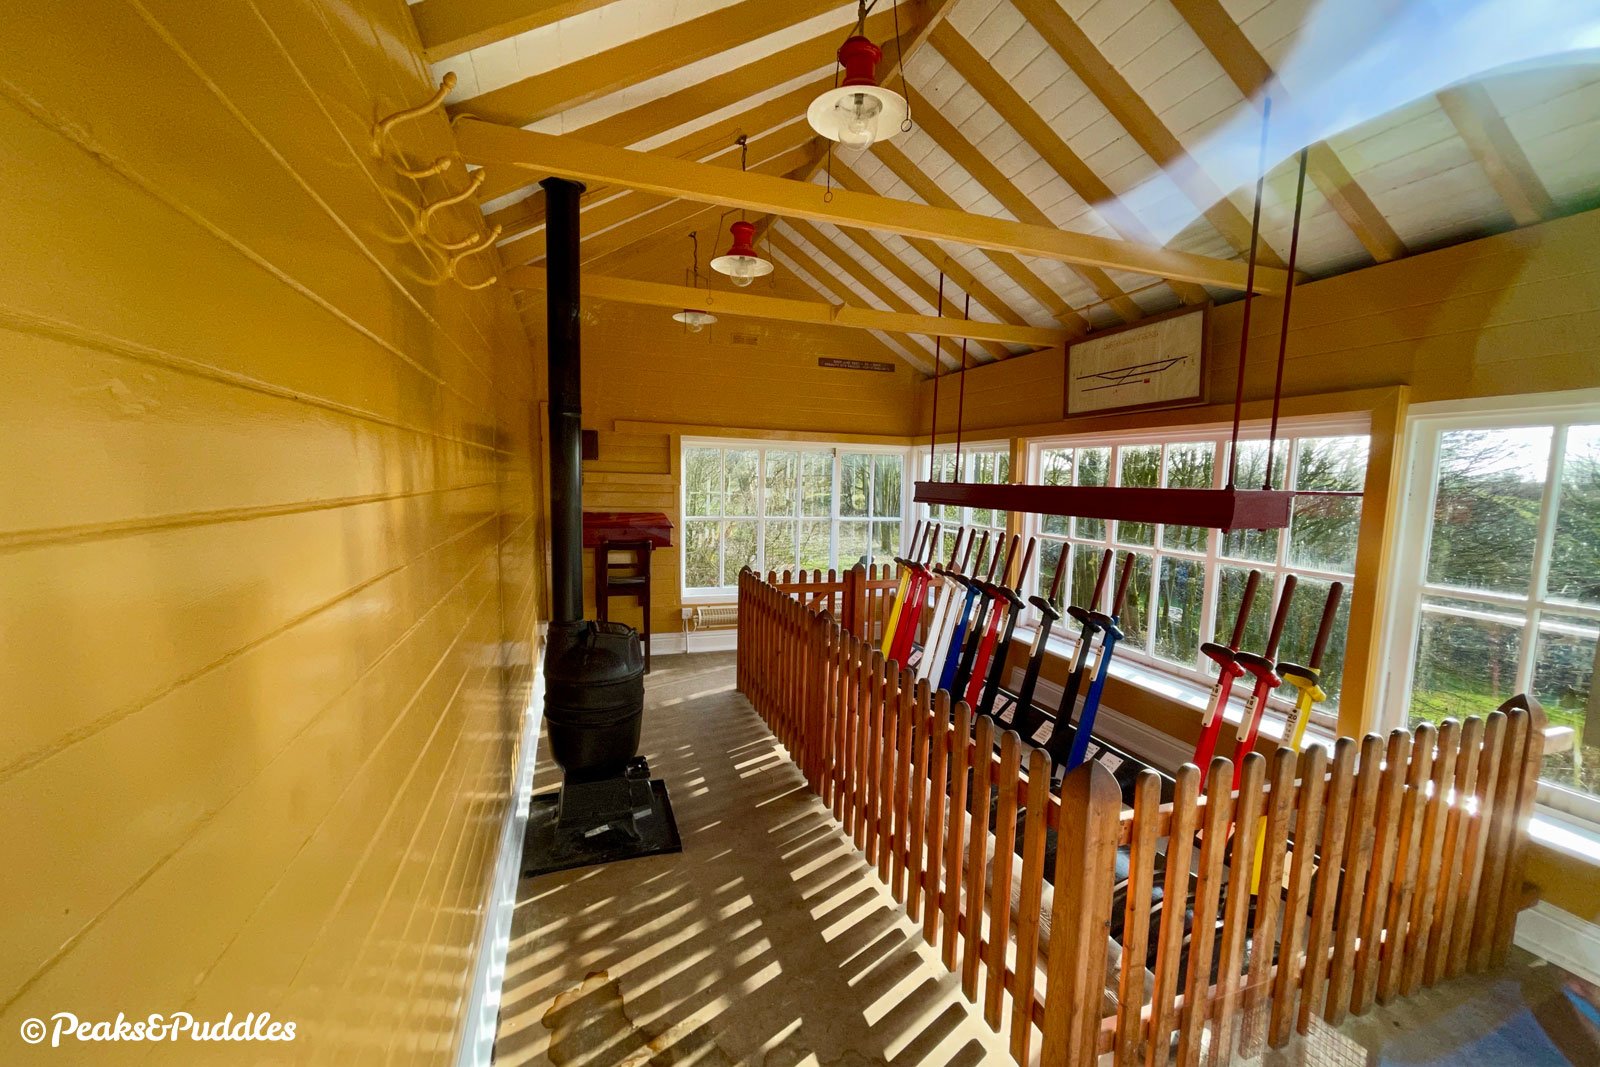 Inside Harrington Signal Box, with its colourful levers, stove, desk and track layout plan.